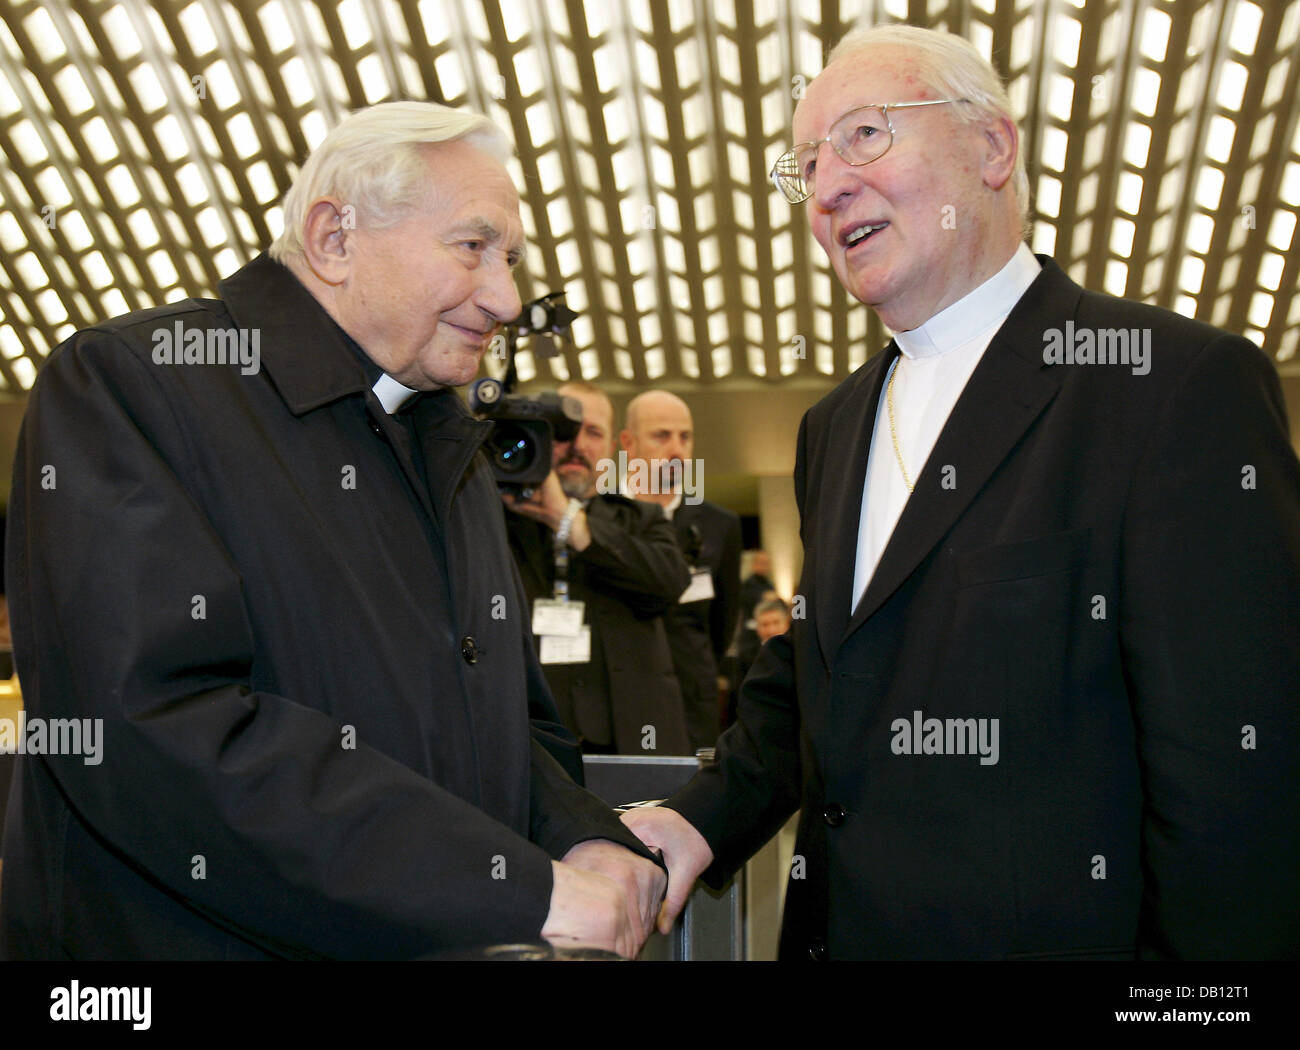 Georg Ratzinger (L), brother of Pope Benedict XVI, shakes hands with Munich?s archbishop Friedrich Cardinal Wetter - Stock Image